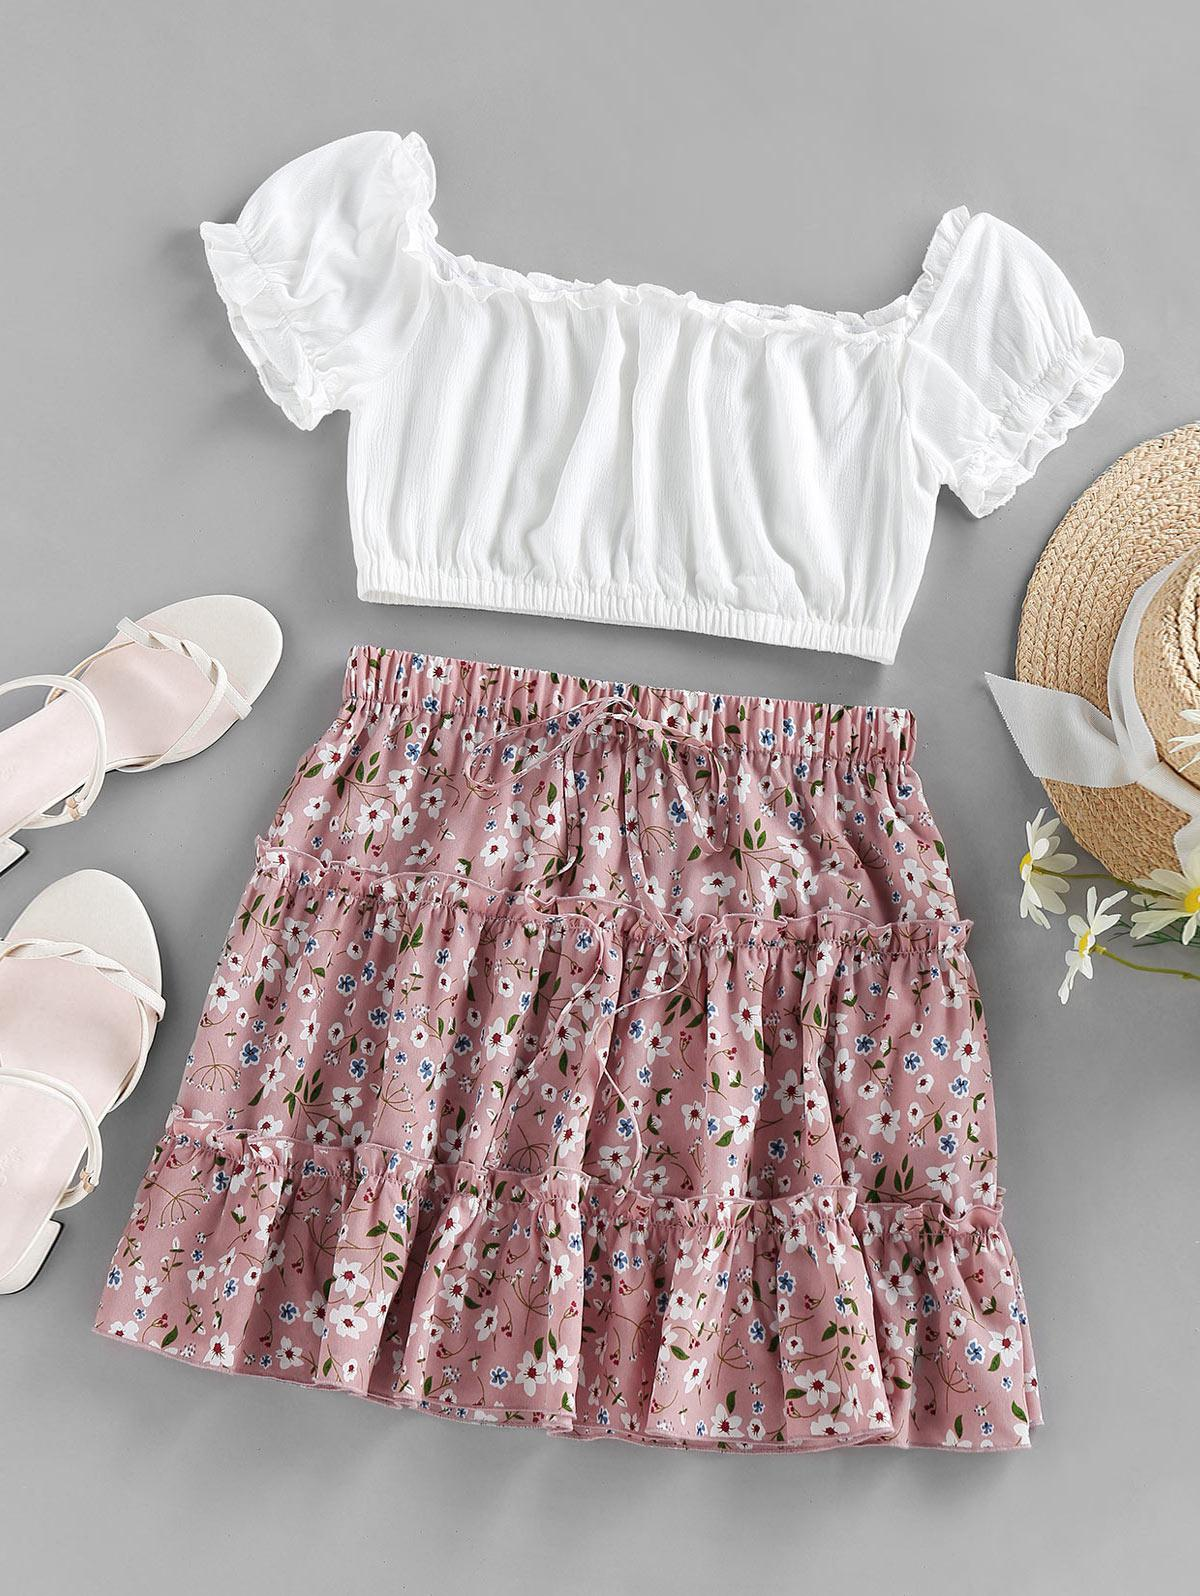 ZAFUL Ditsy Print Bowknot Crinkle Frilled Tiered Skirt Set